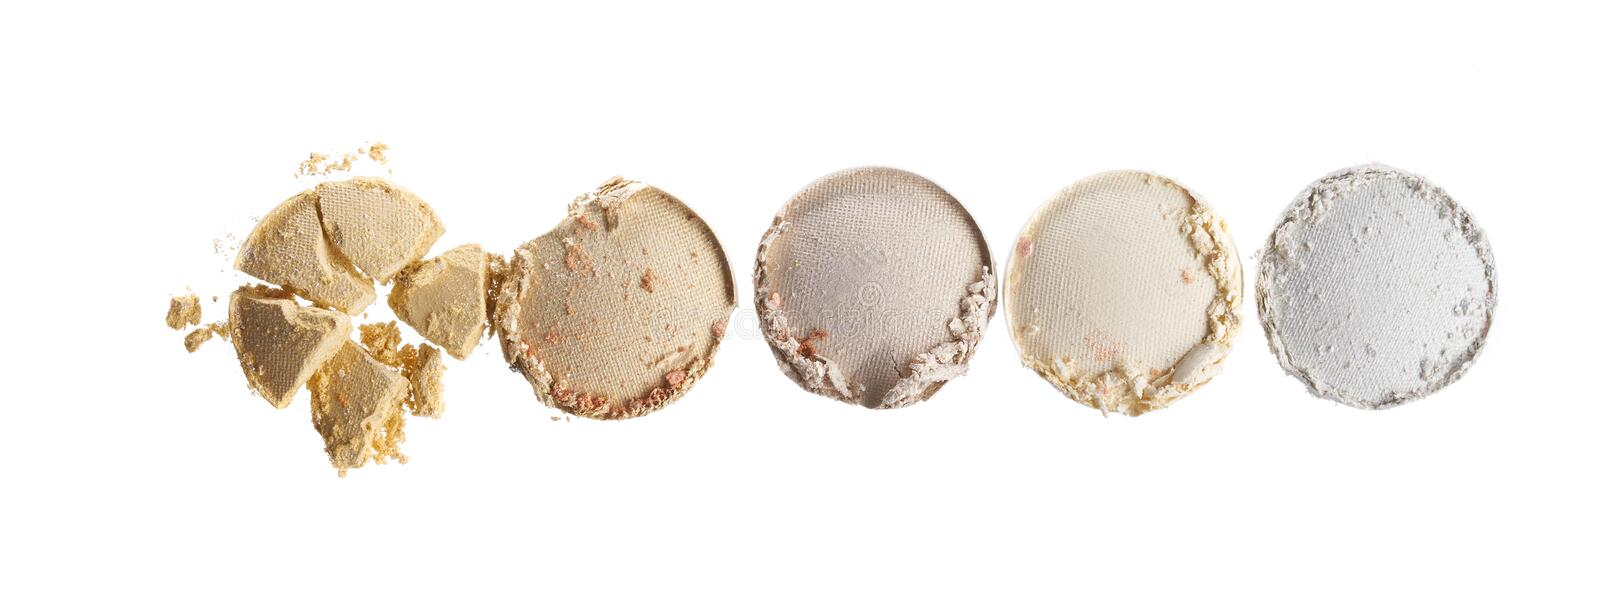 Broken eyeshadows in trendy shades. Isolated on white background royalty free stock photos